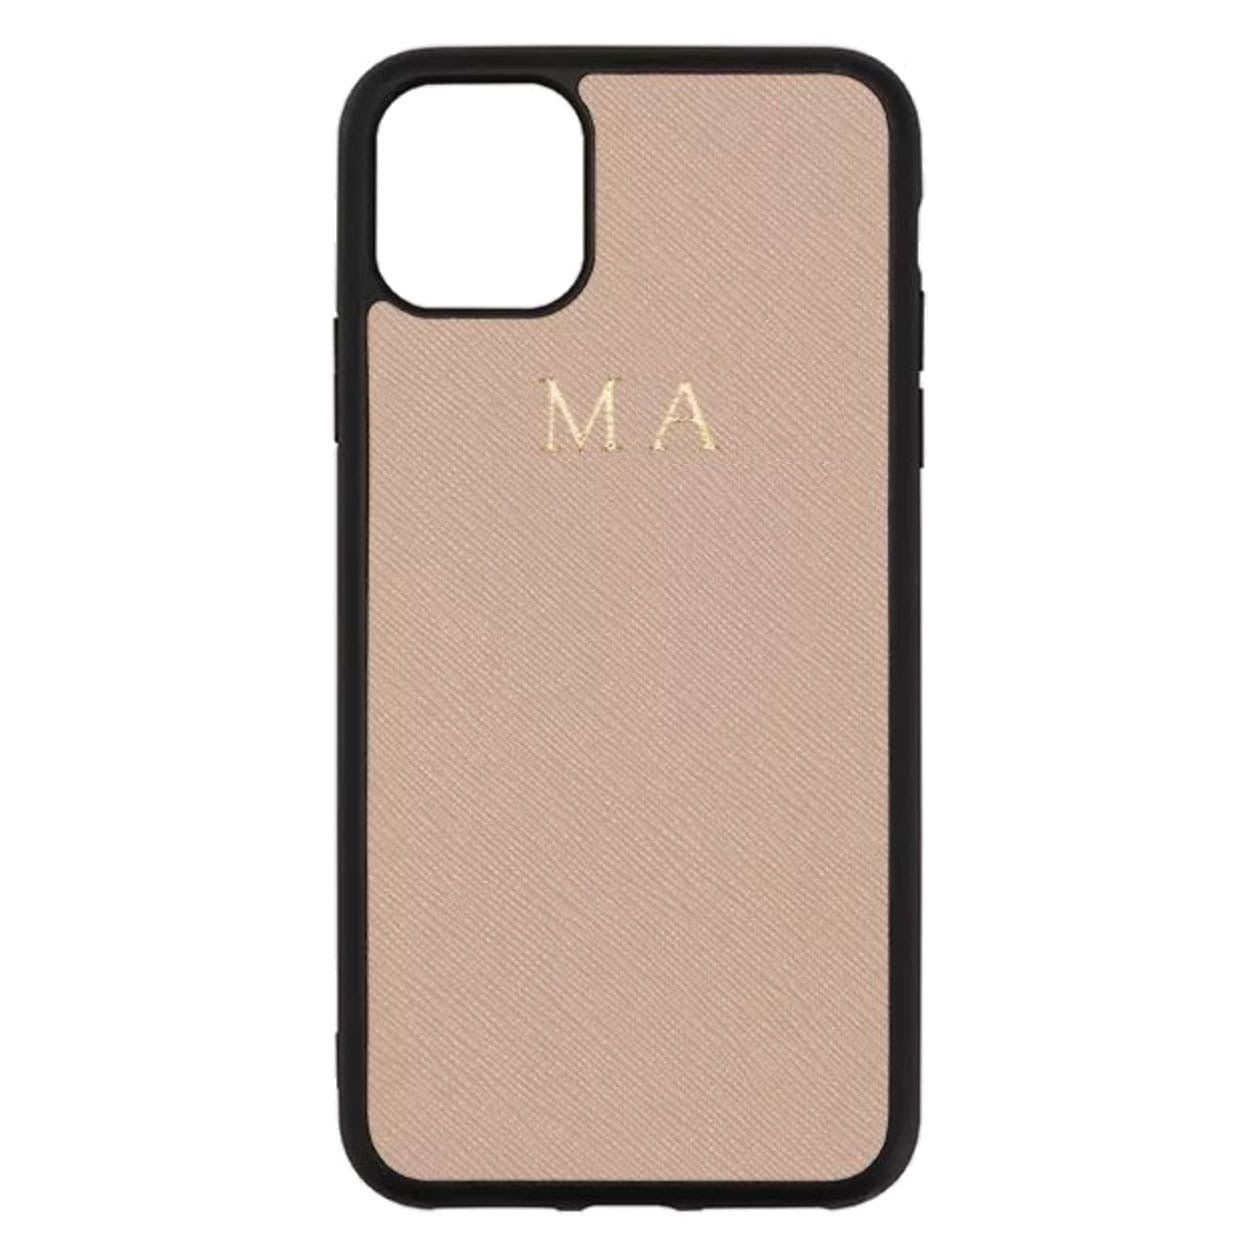 iPhone 11 Pro Max Case in Taupe